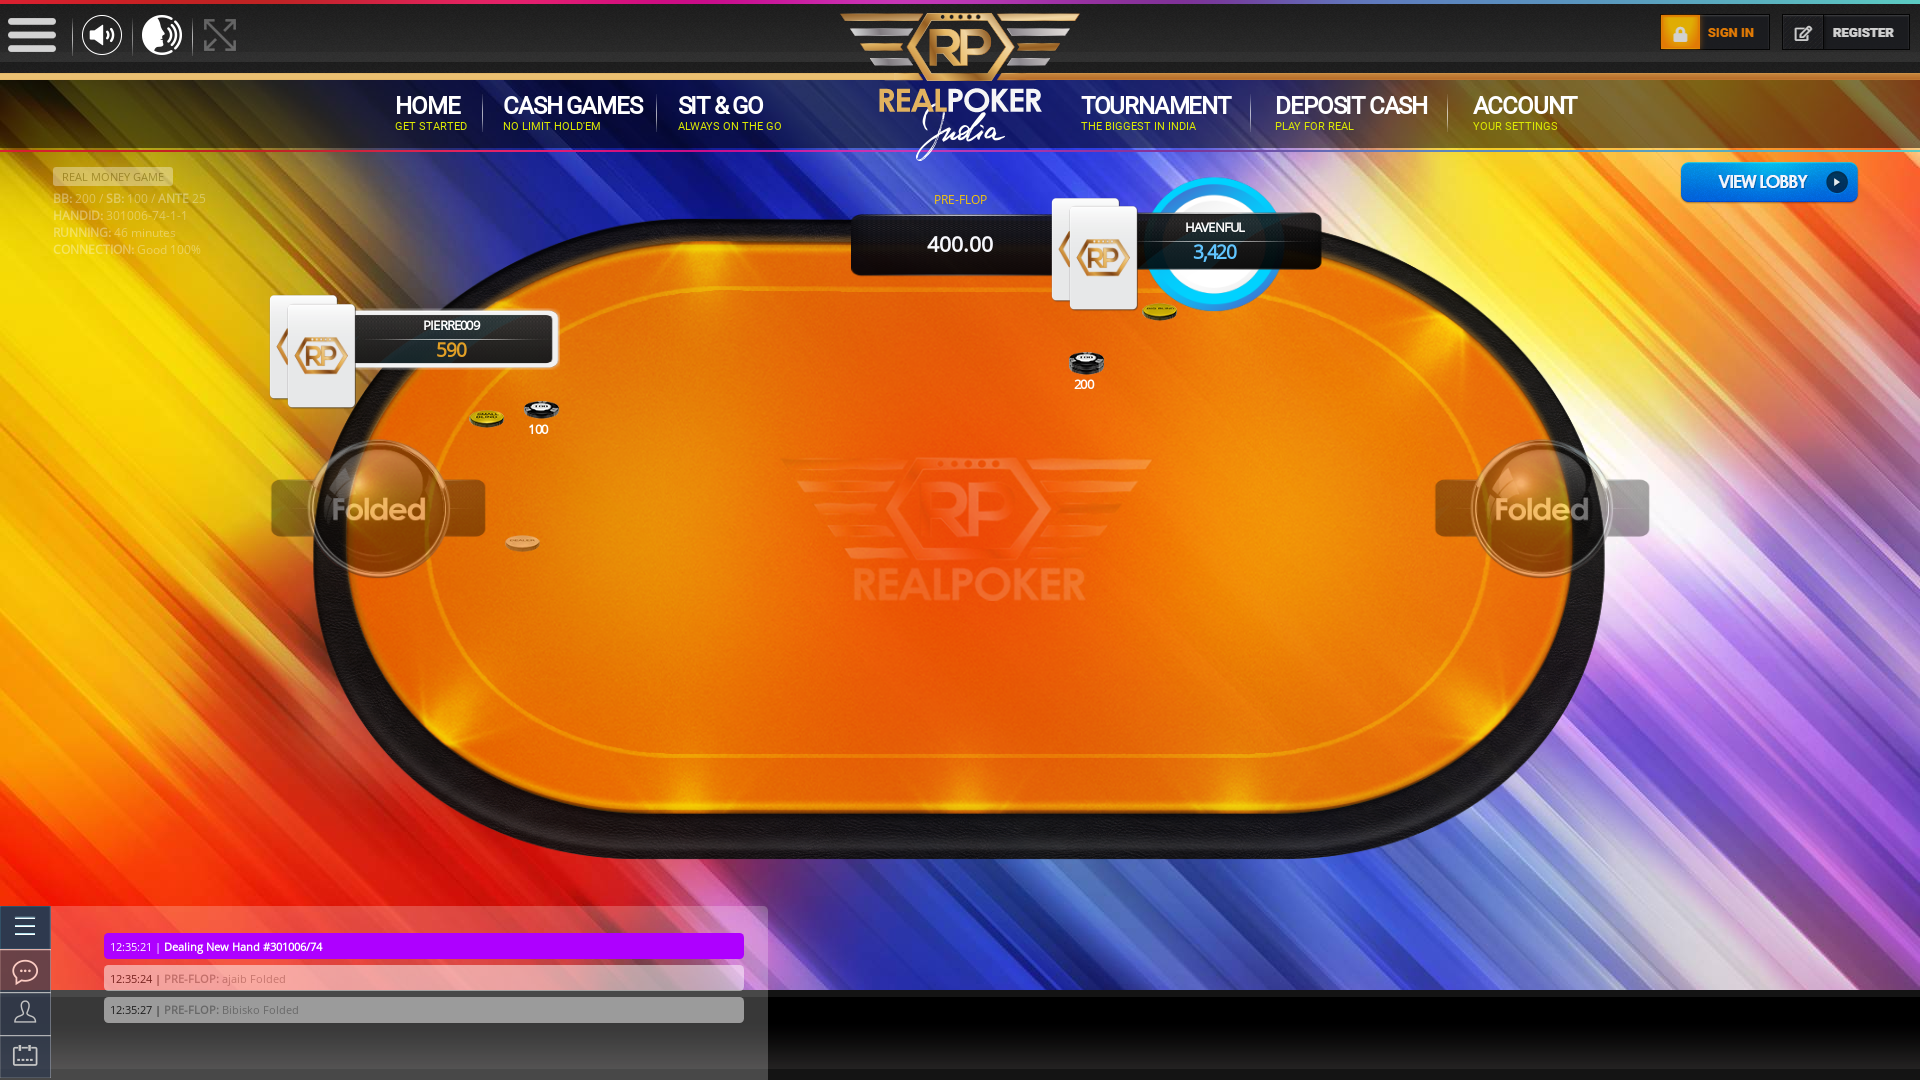 Indian online poker on a 10 player table in the 46th minute match up